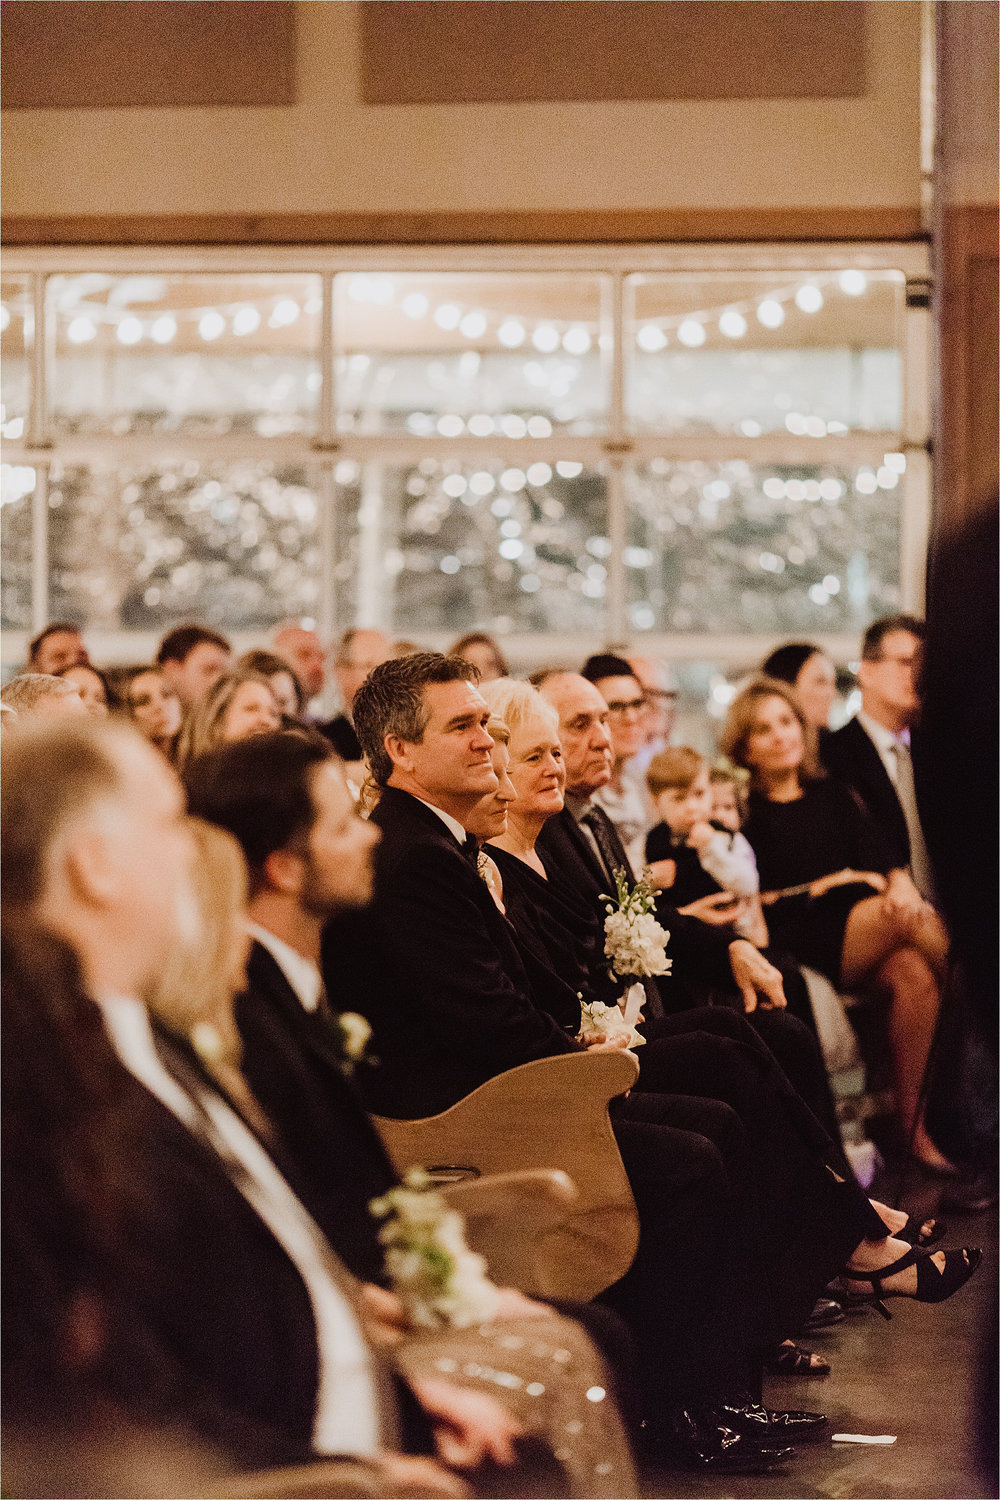 NashvilleWedding_NewYearsEveWedding_NYE_NashvilleWeddingPhotographer_LovelessWedding_Tennessee_MollyPeachPhotography-79.jpg